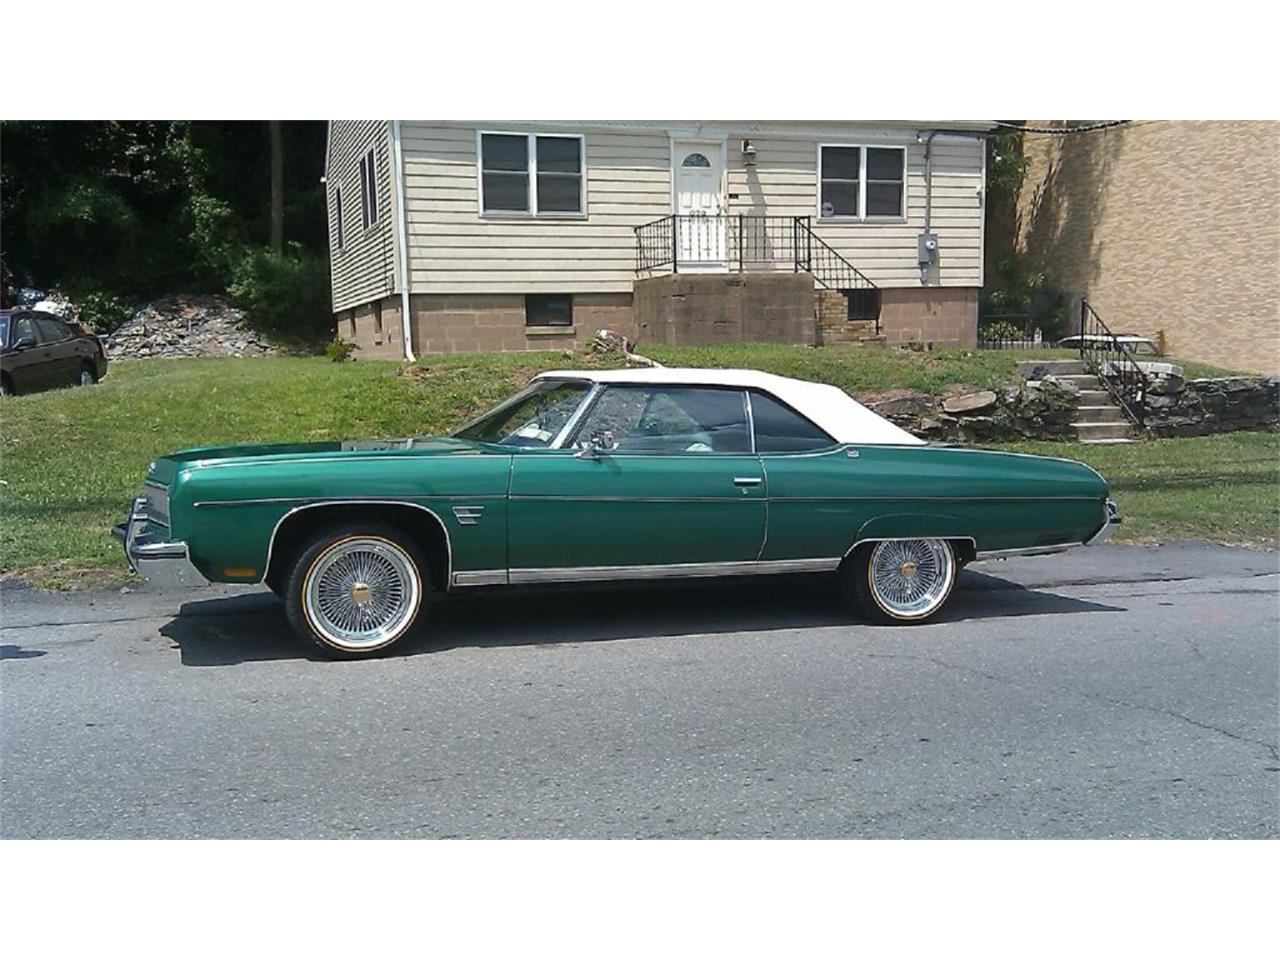 1973 Chevrolet Caprice (CC-1333757) for sale in West Pittston, Pennsylvania